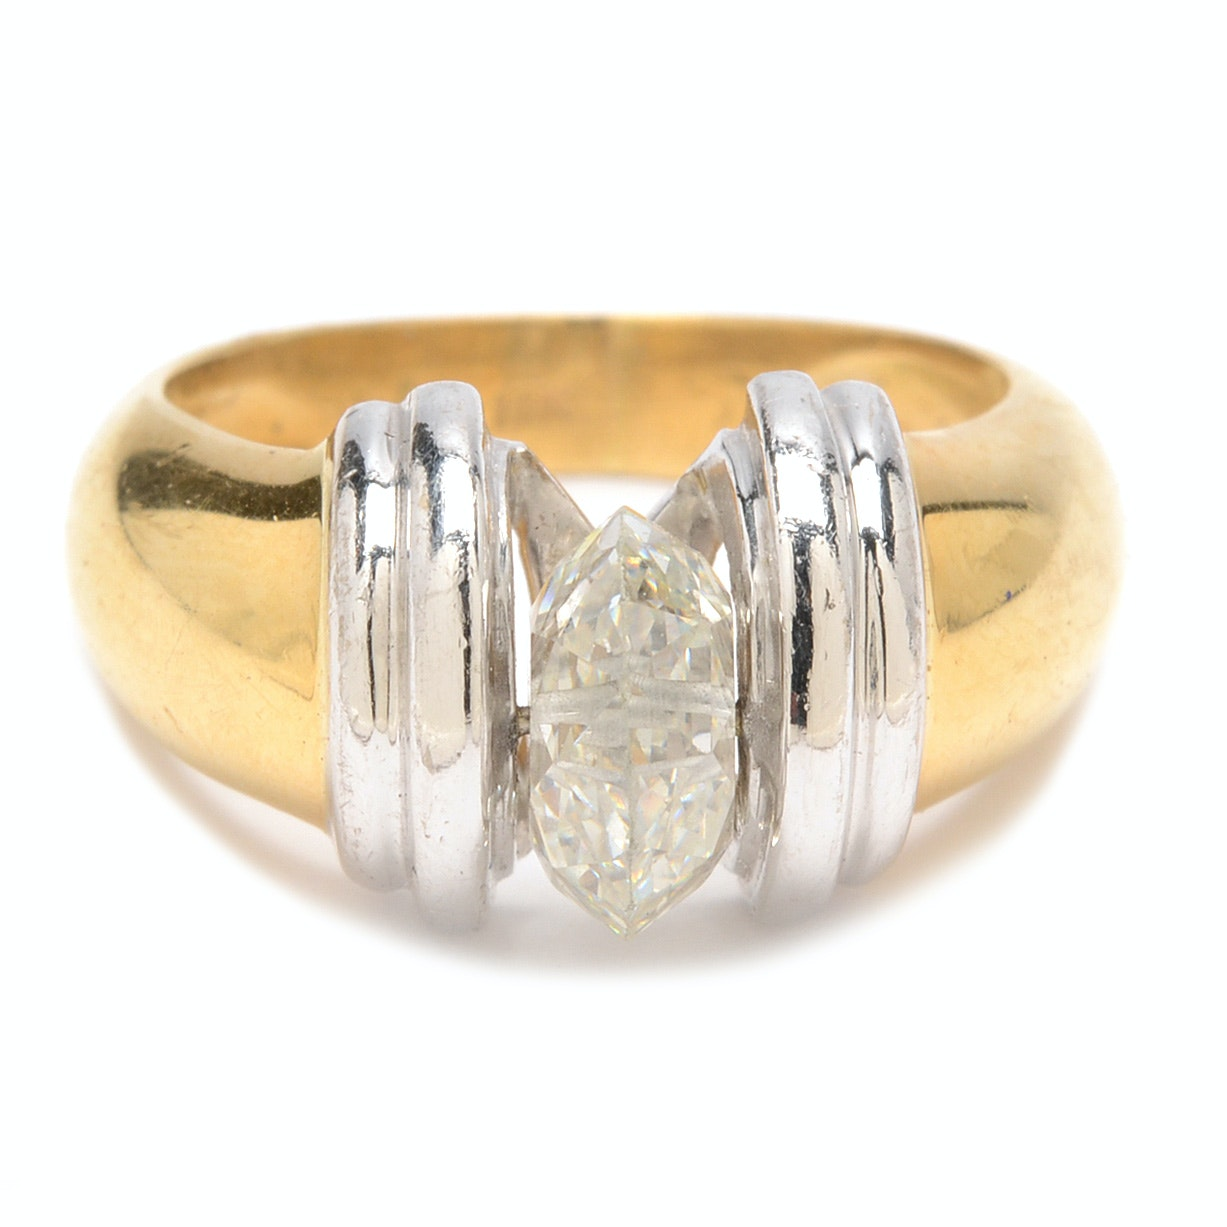 18K Yellow Gold and 14K White Gold Diamond Ring